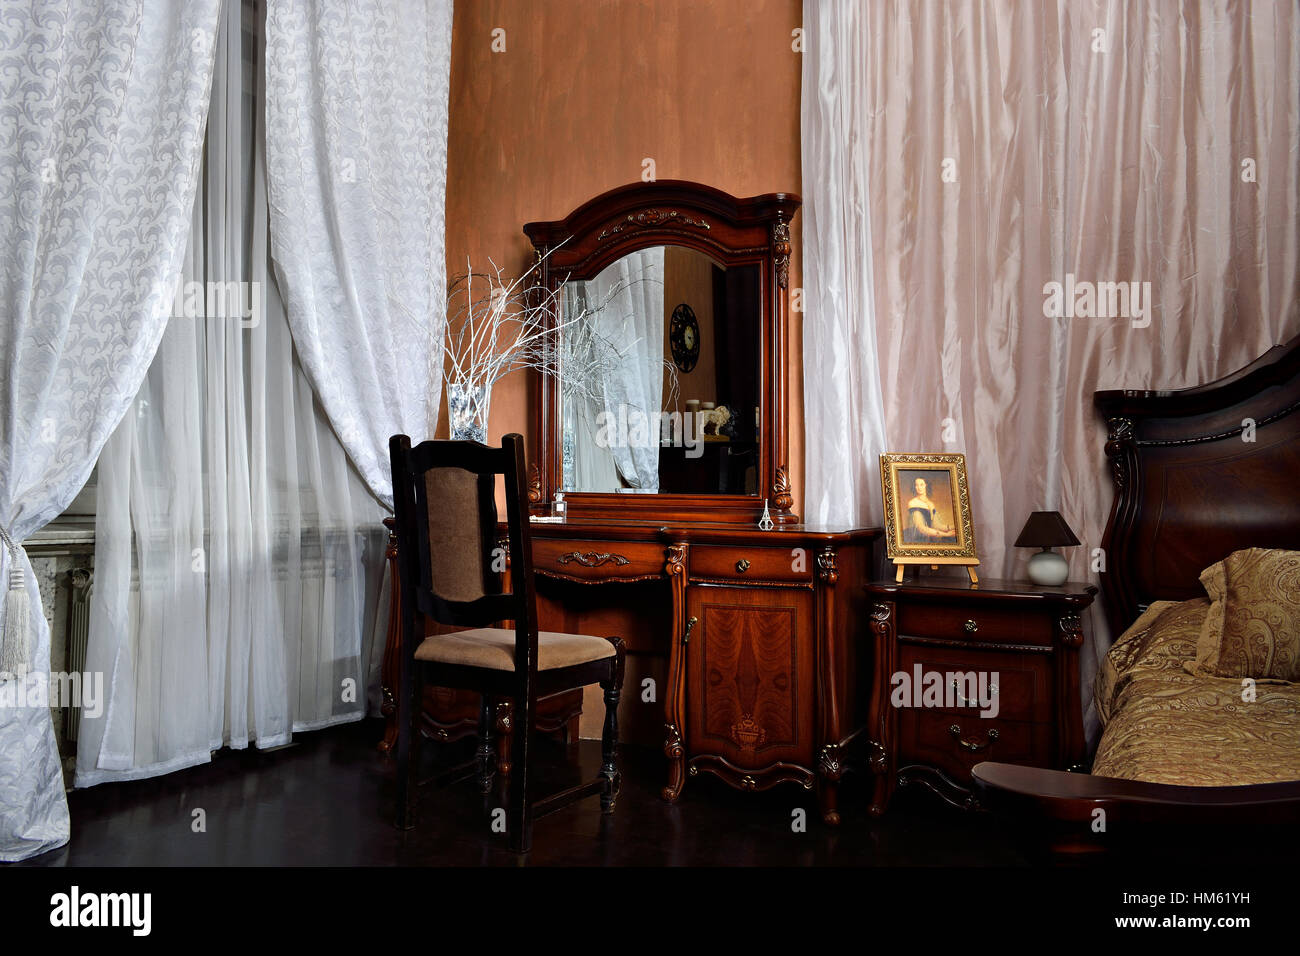 Mahogany Red Stockfotos & Mahogany Red Bilder - Seite 3 - Alamy